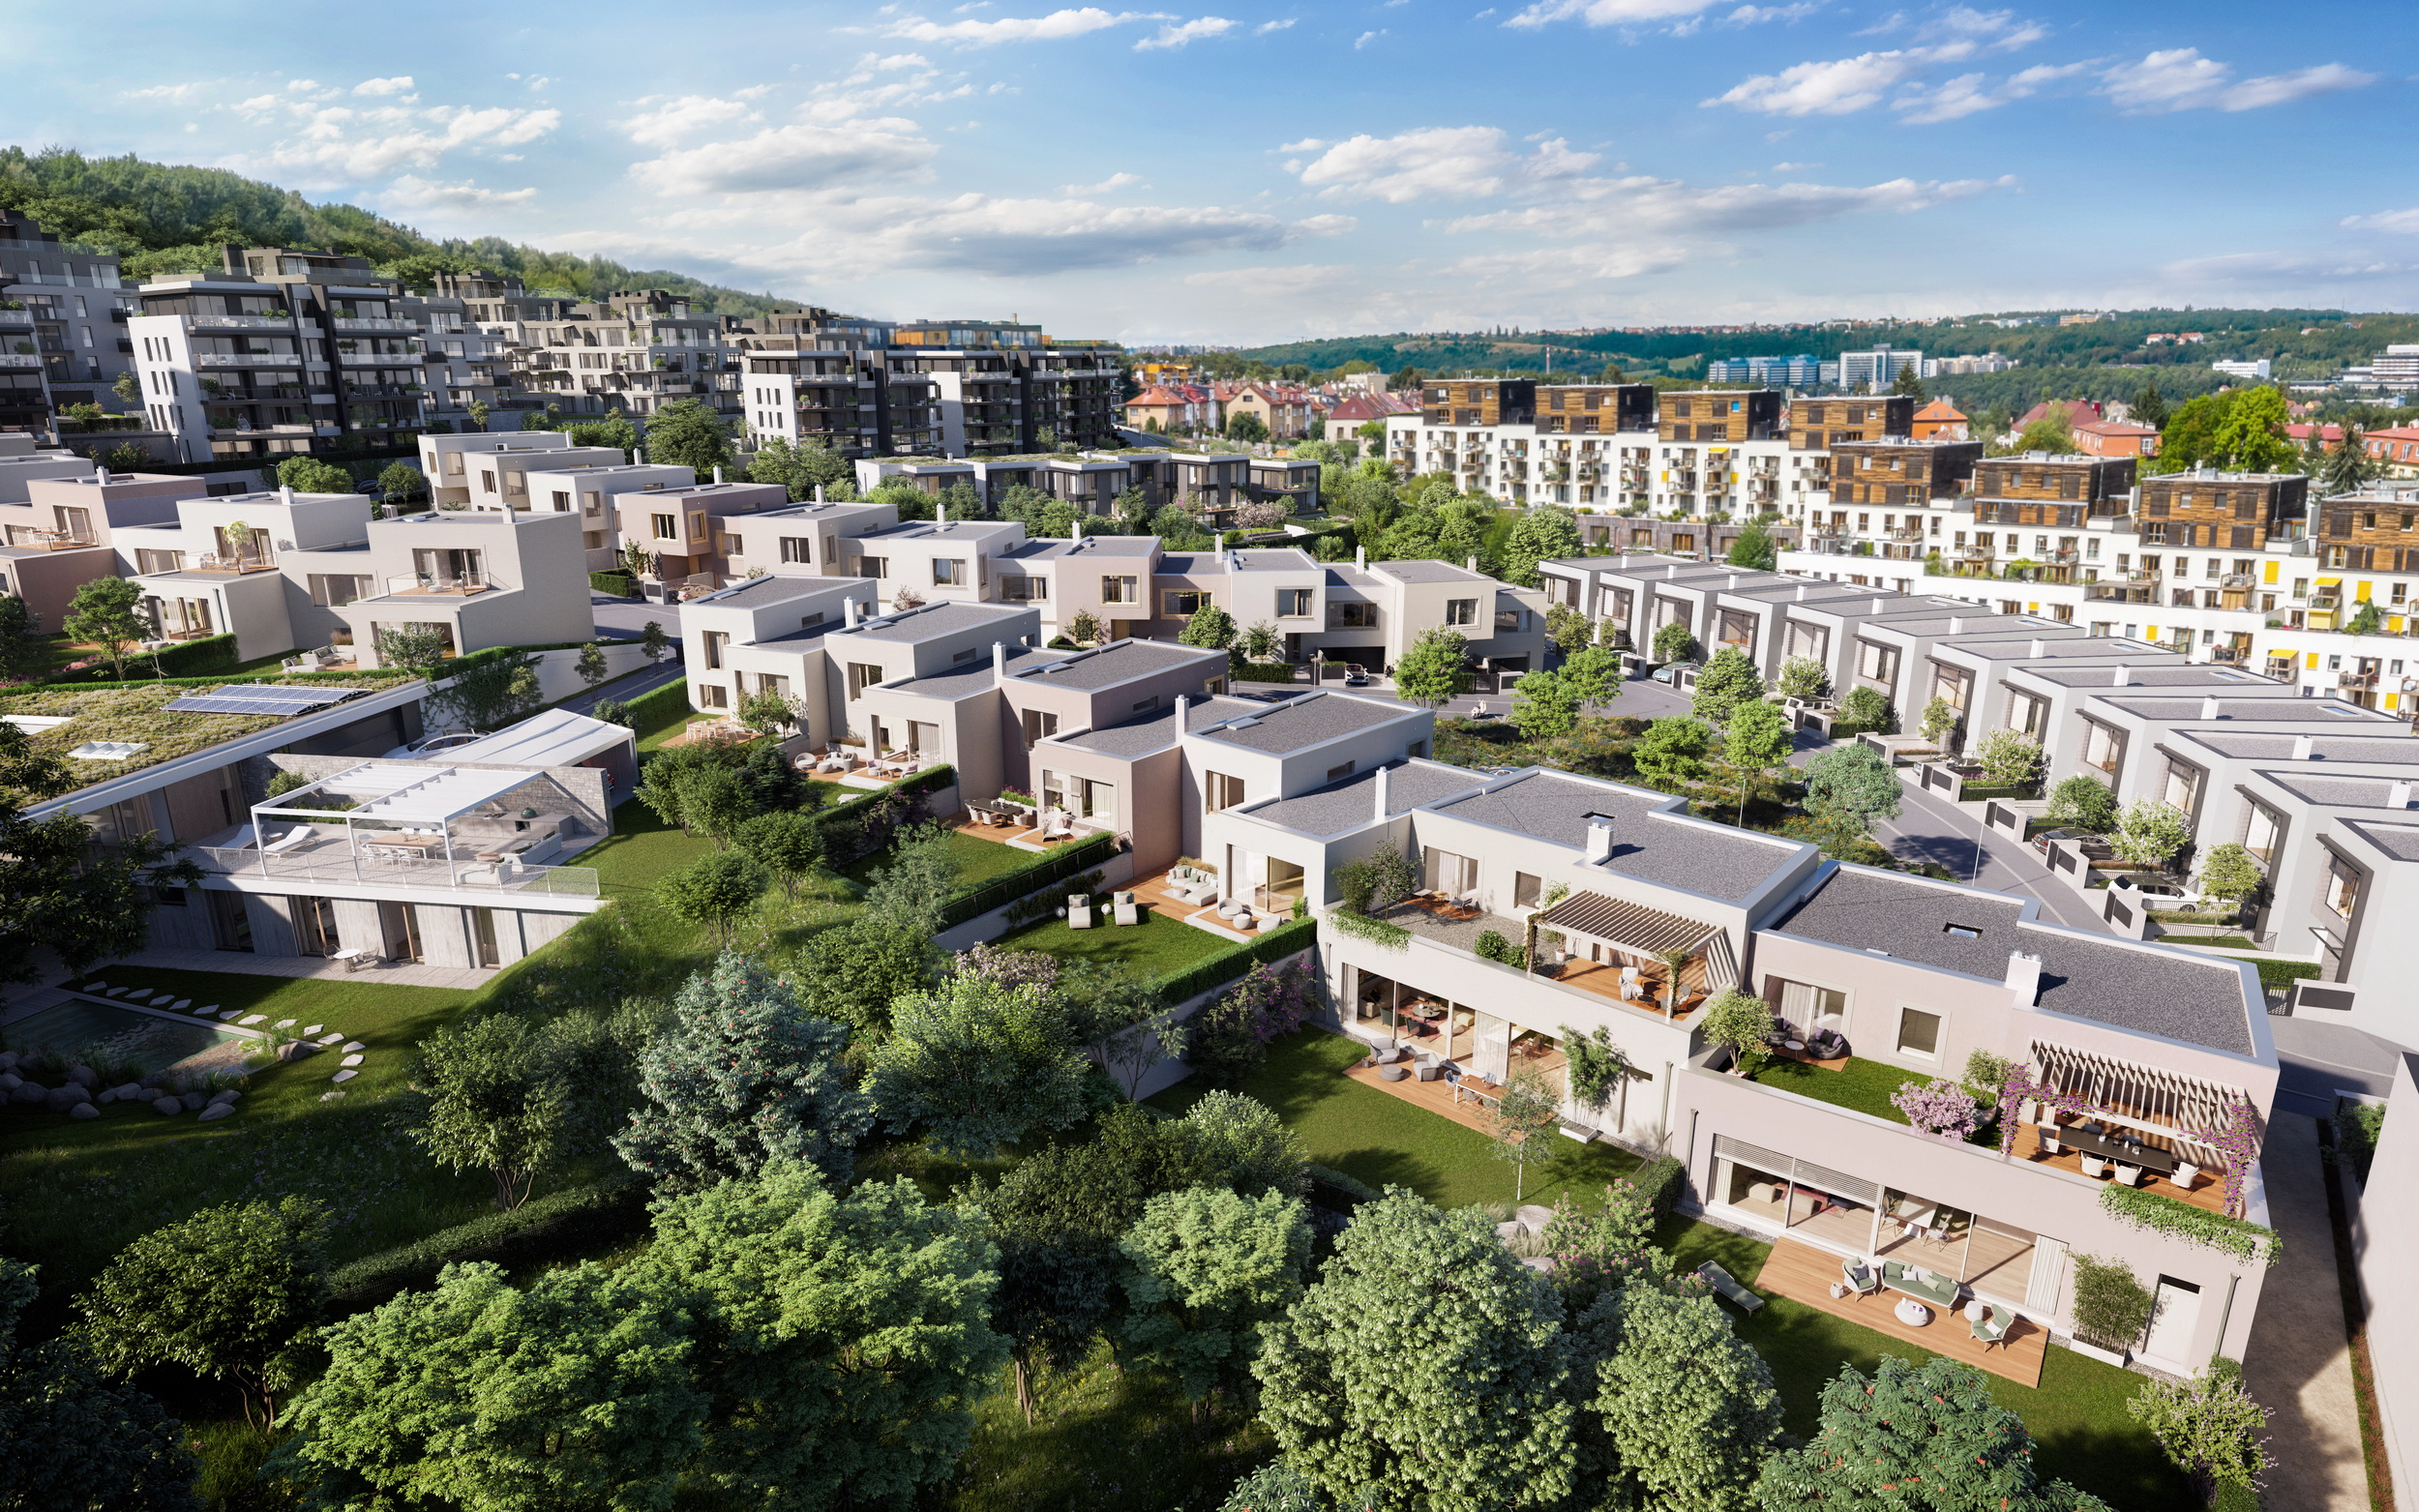 cascaded townhouses with views